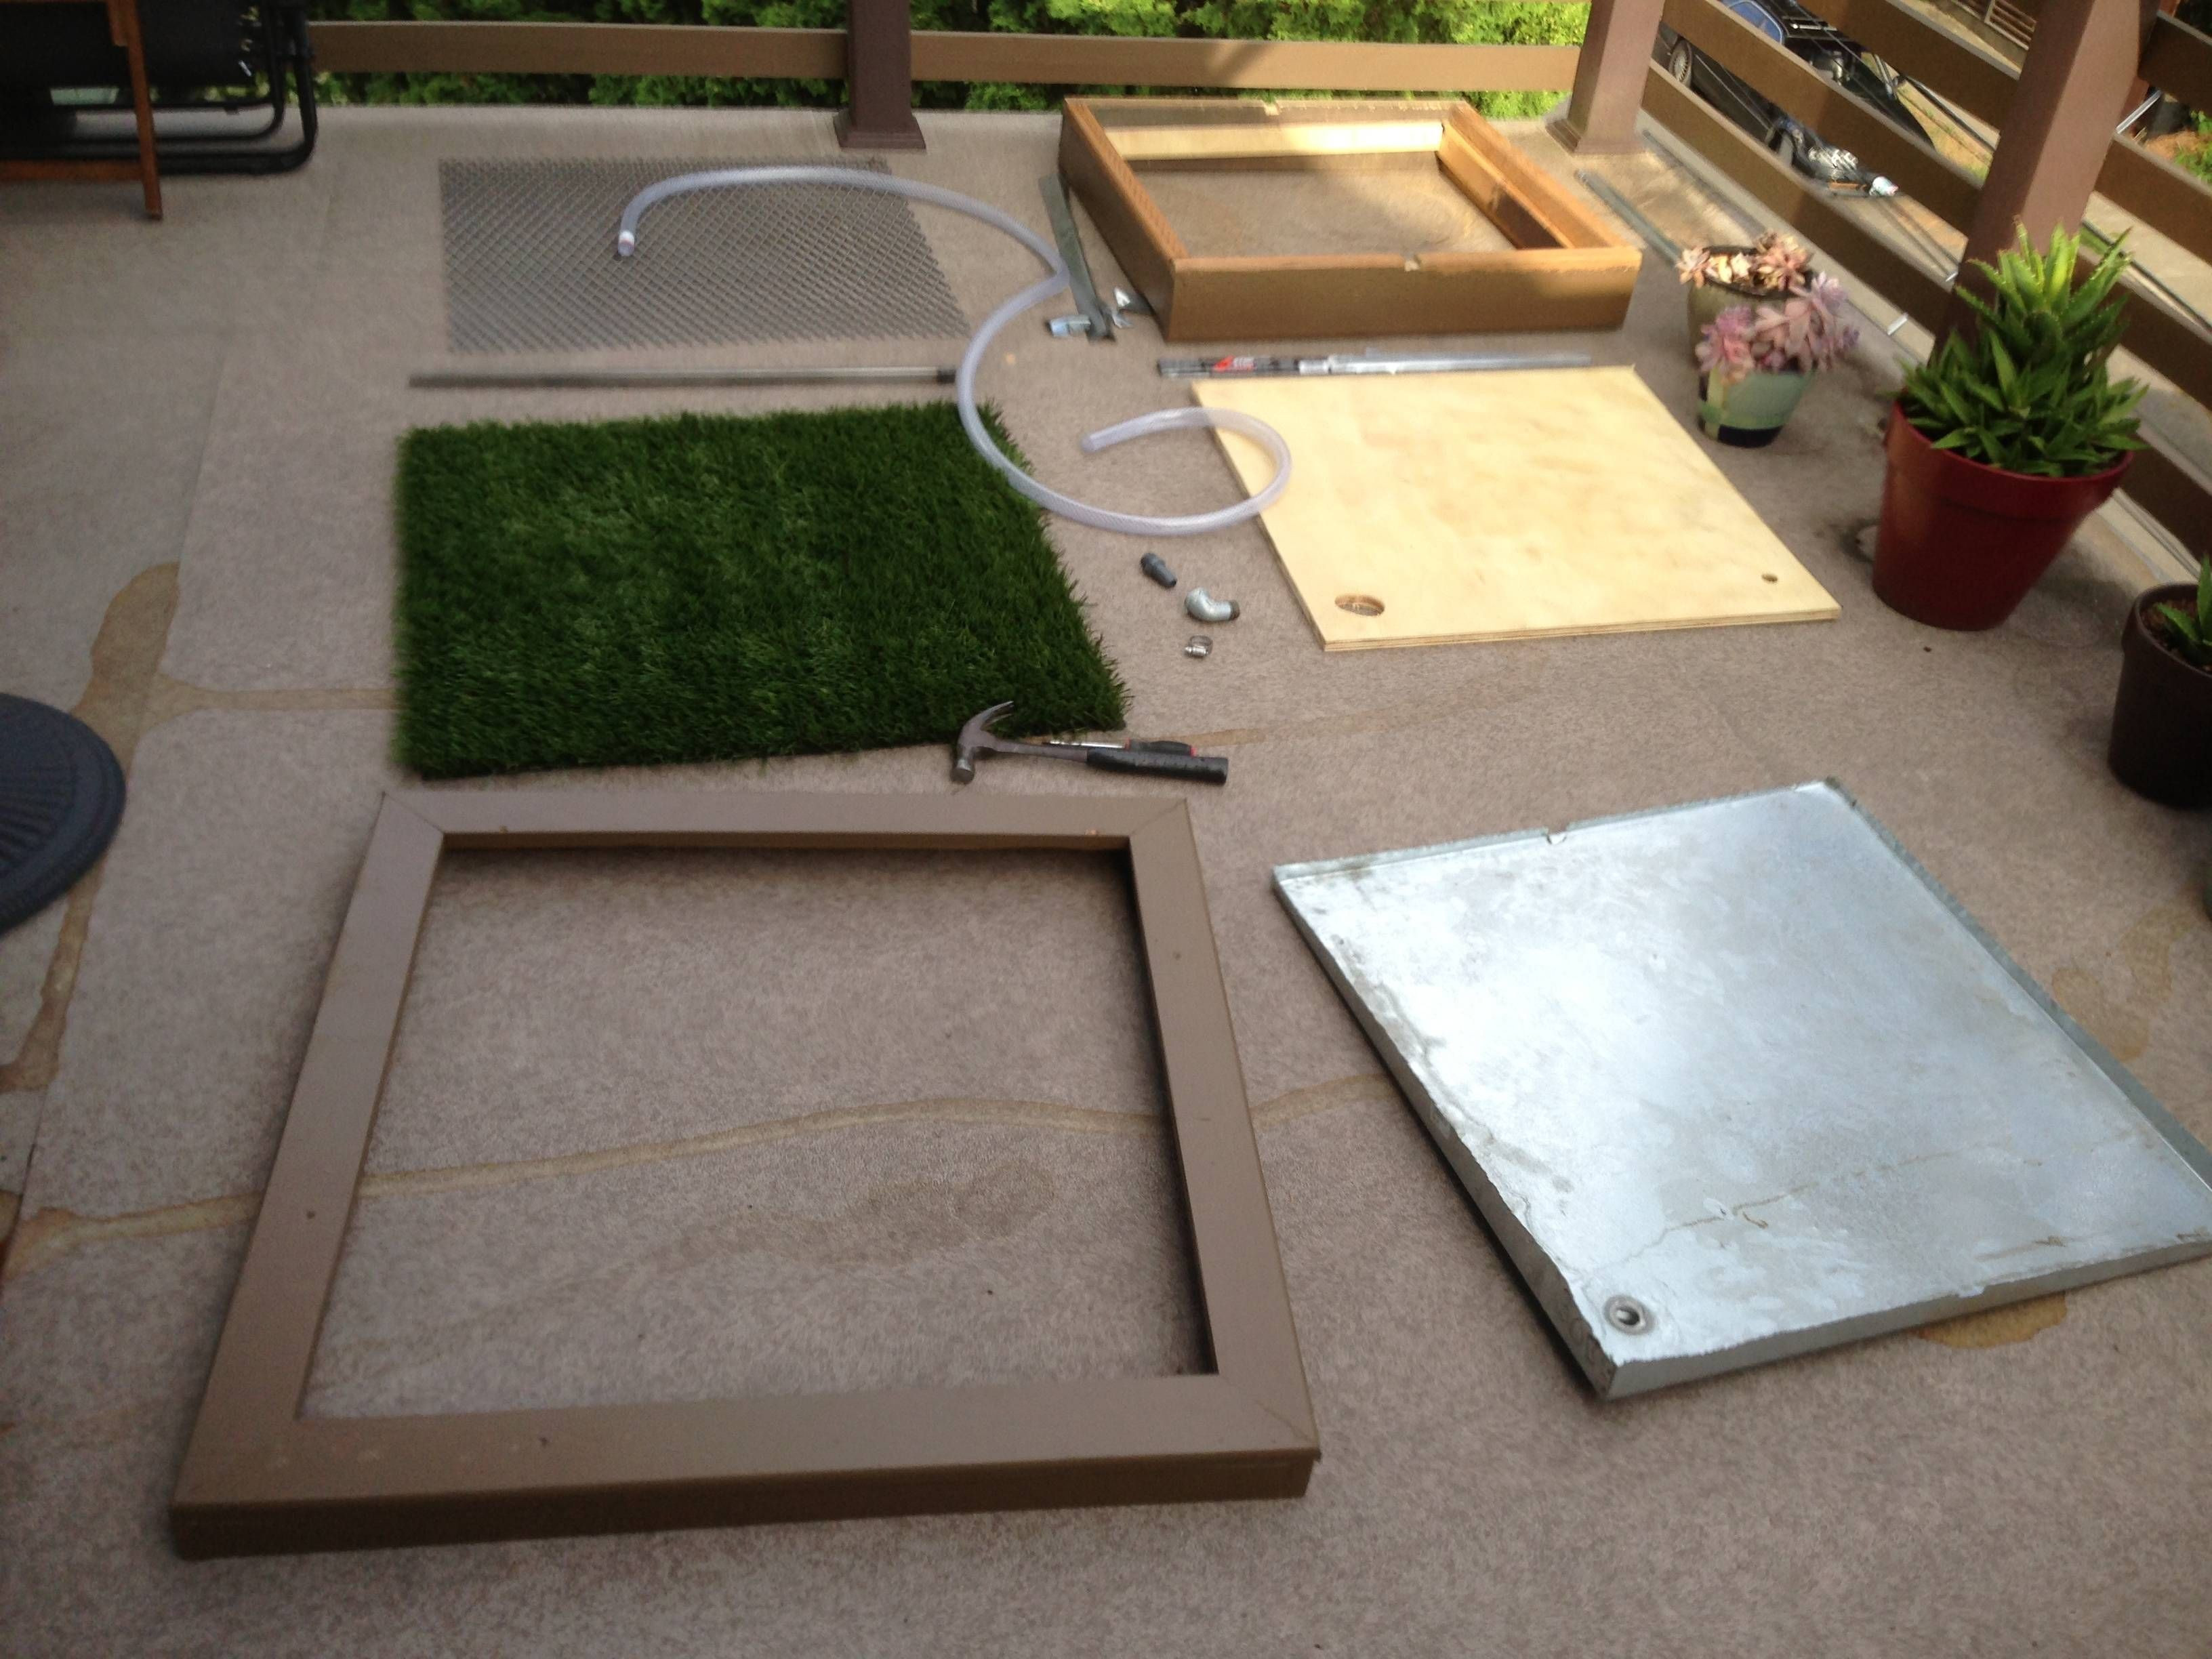 Best ideas about Patio Dog Potty DIY . Save or Pin DIY porch potty for crowley Now.